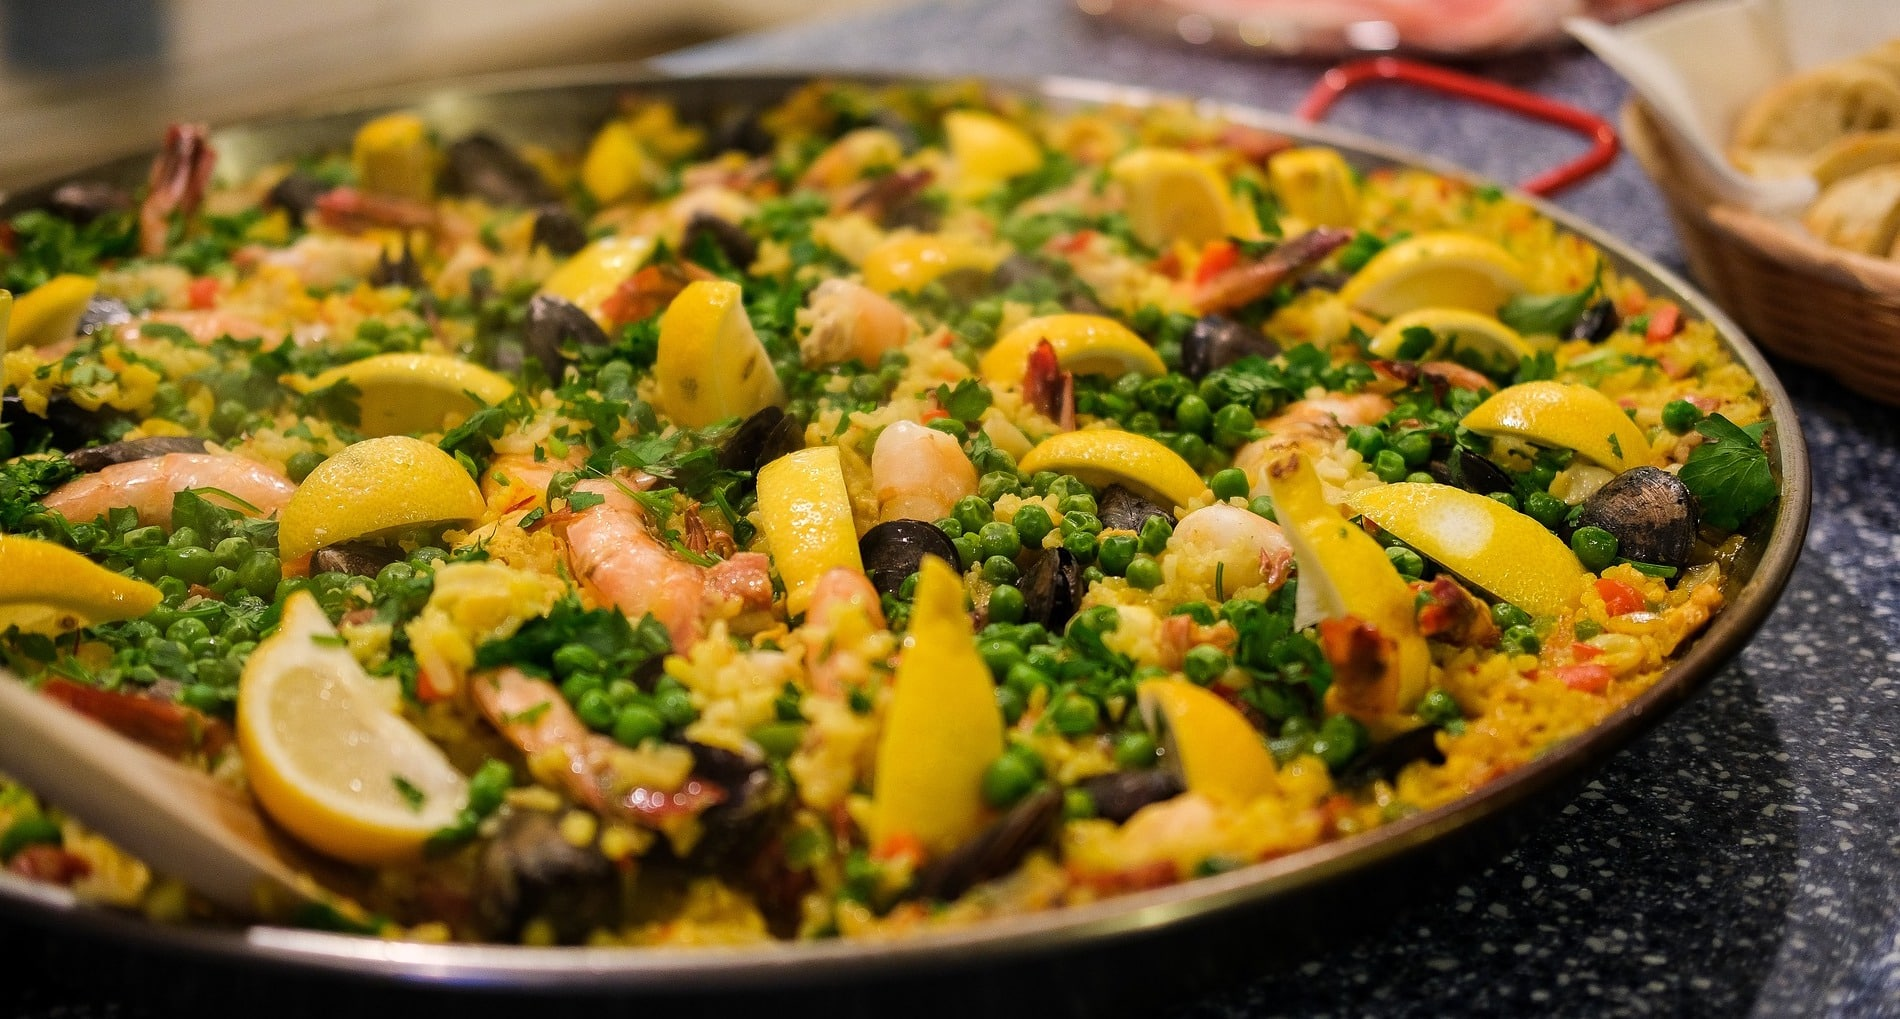 Where to Find the Best Paella in Valencia Spain